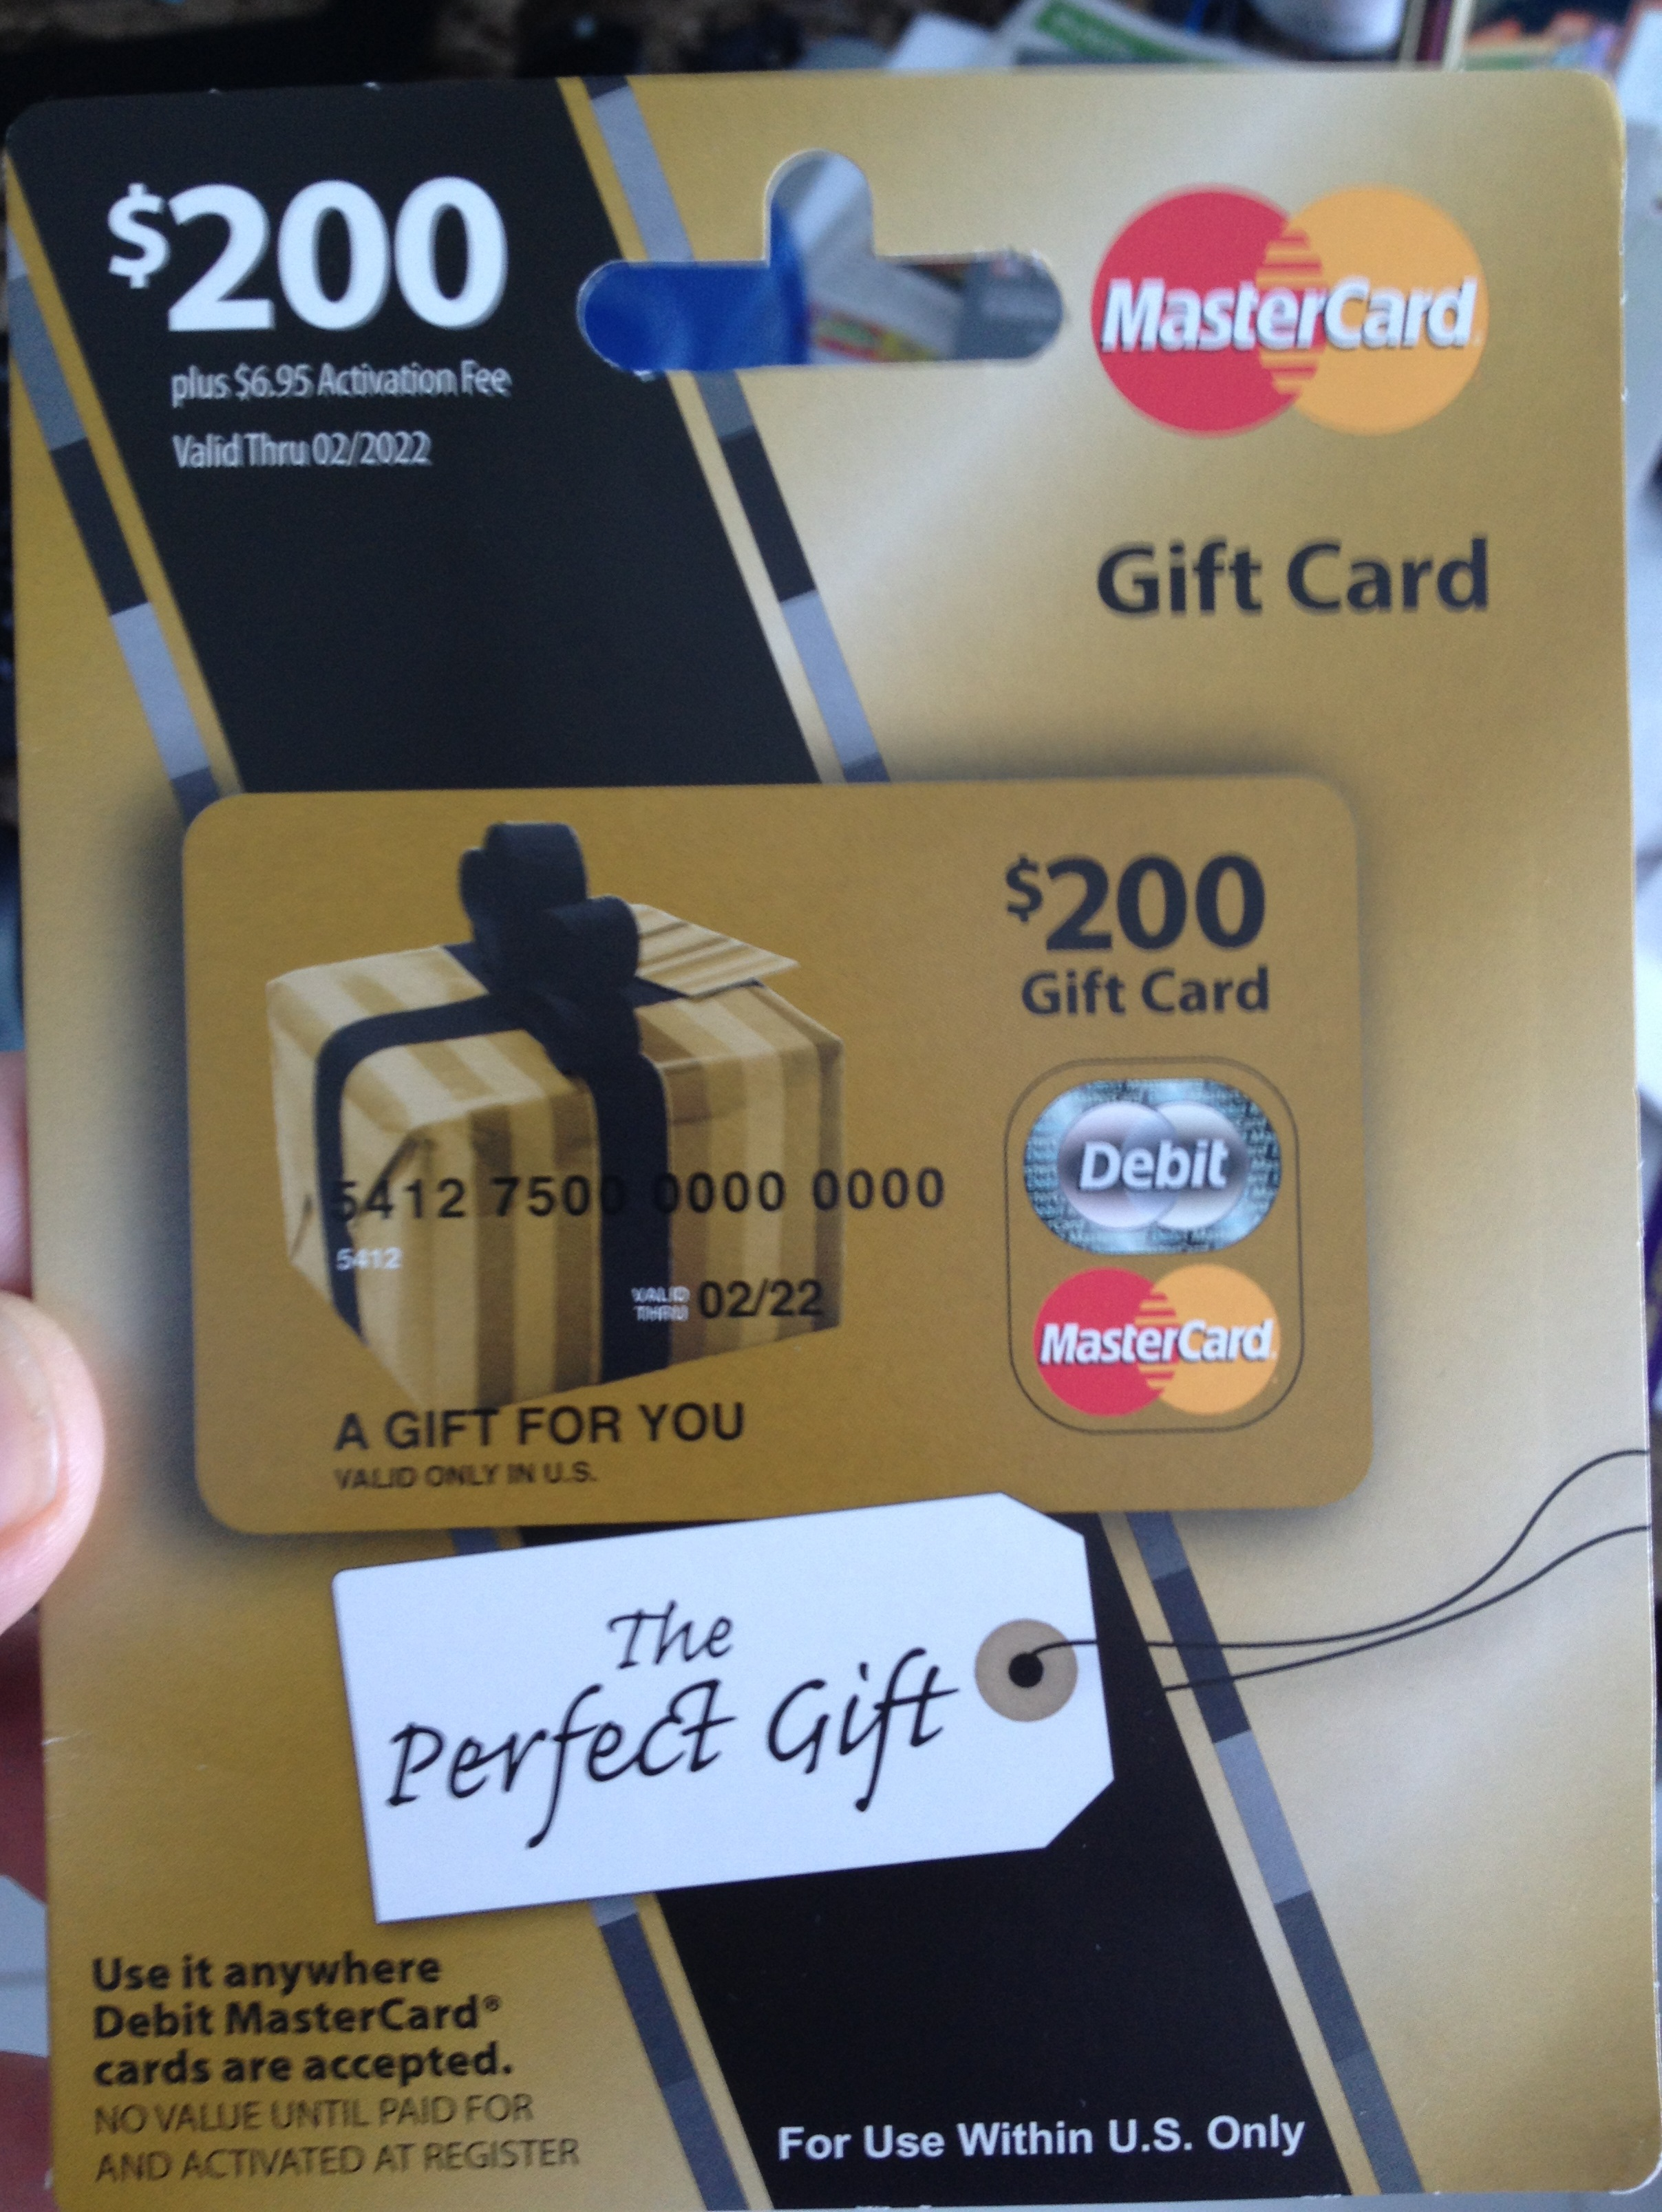 2000 Easy Ultimate Rewards Points this week from Staples